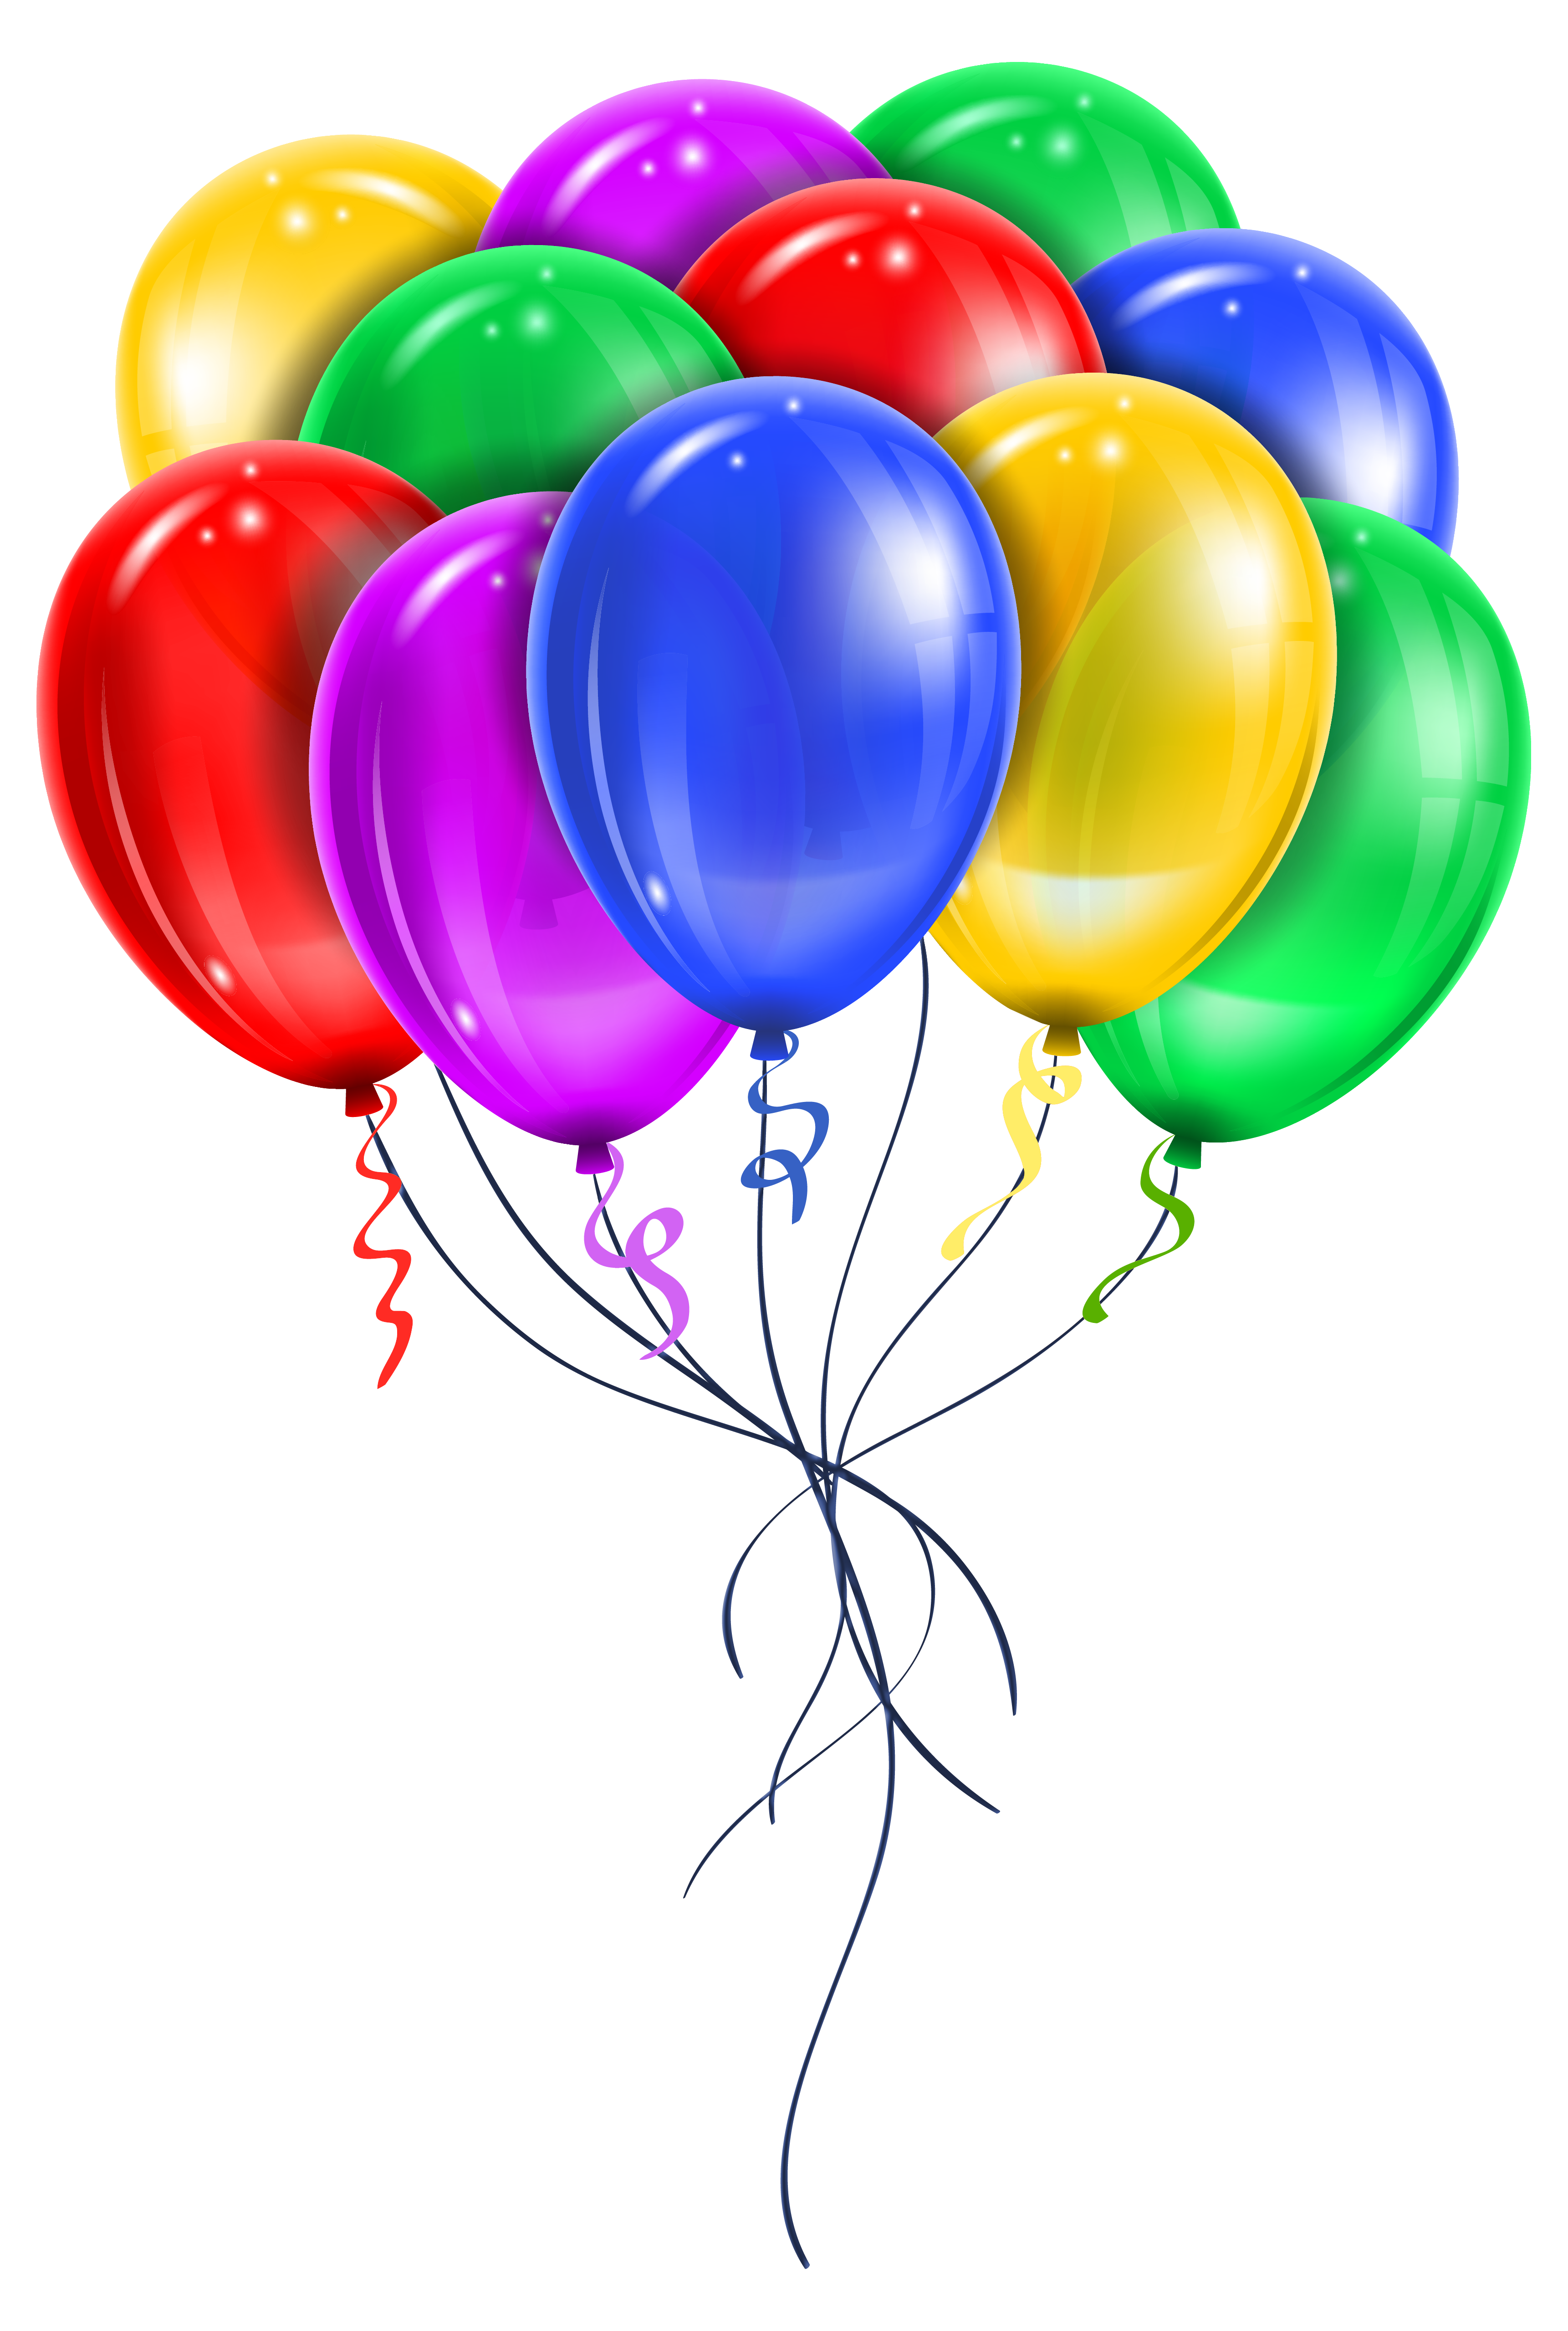 Ballons png. Transparent multi color balloons